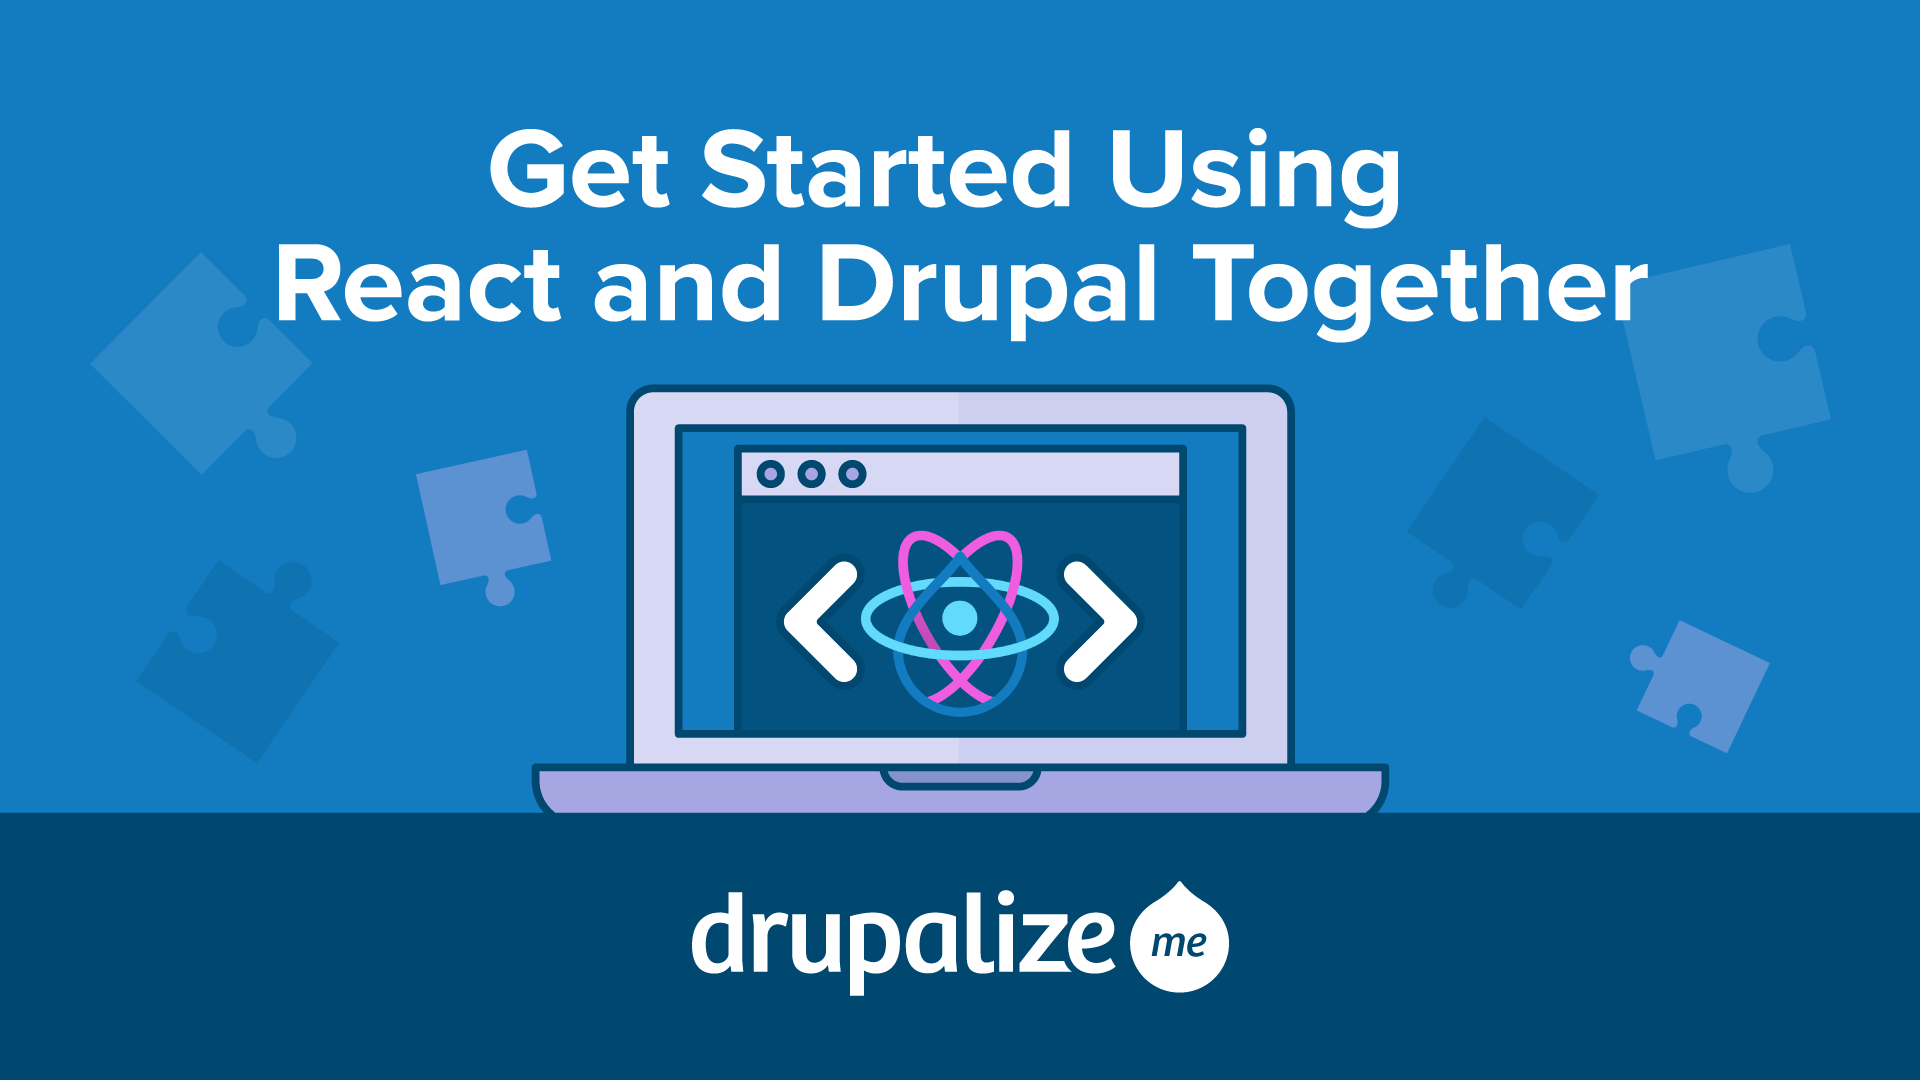 Get Started Using React and Drupal Together